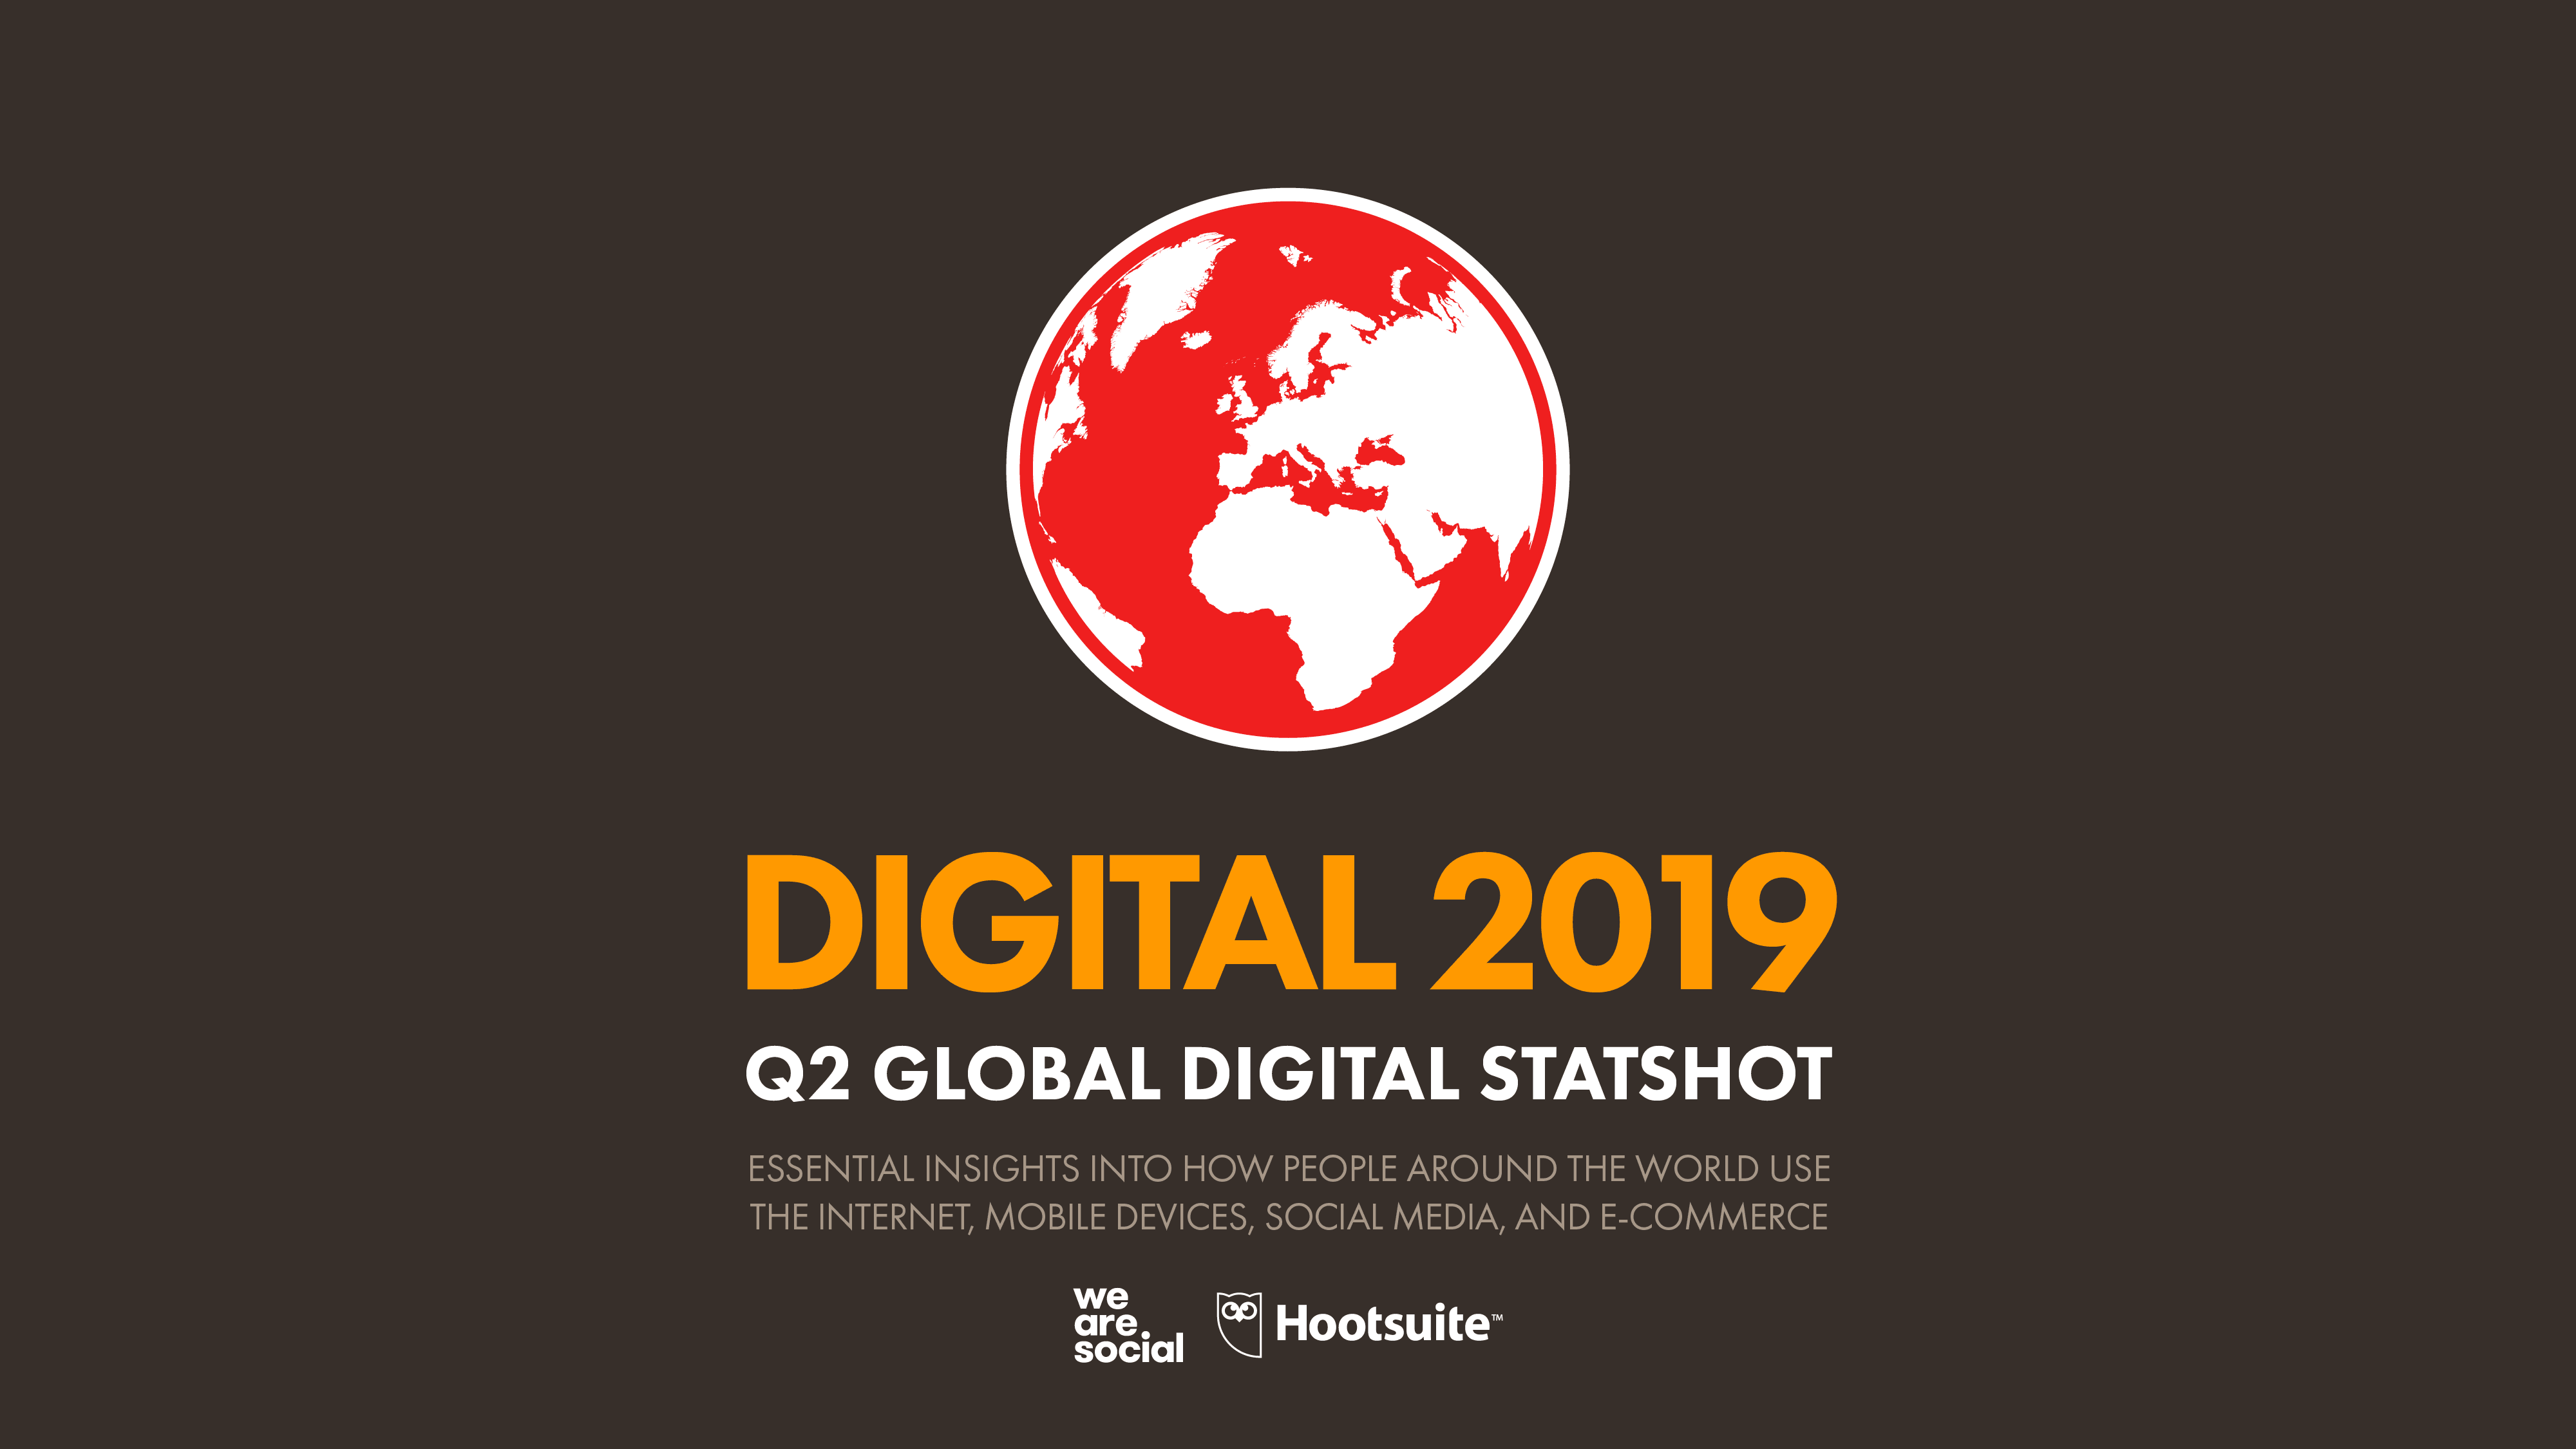 Q2 Digital Statshot 2019: TikTok peaks, Snapchat grows, and voice rises